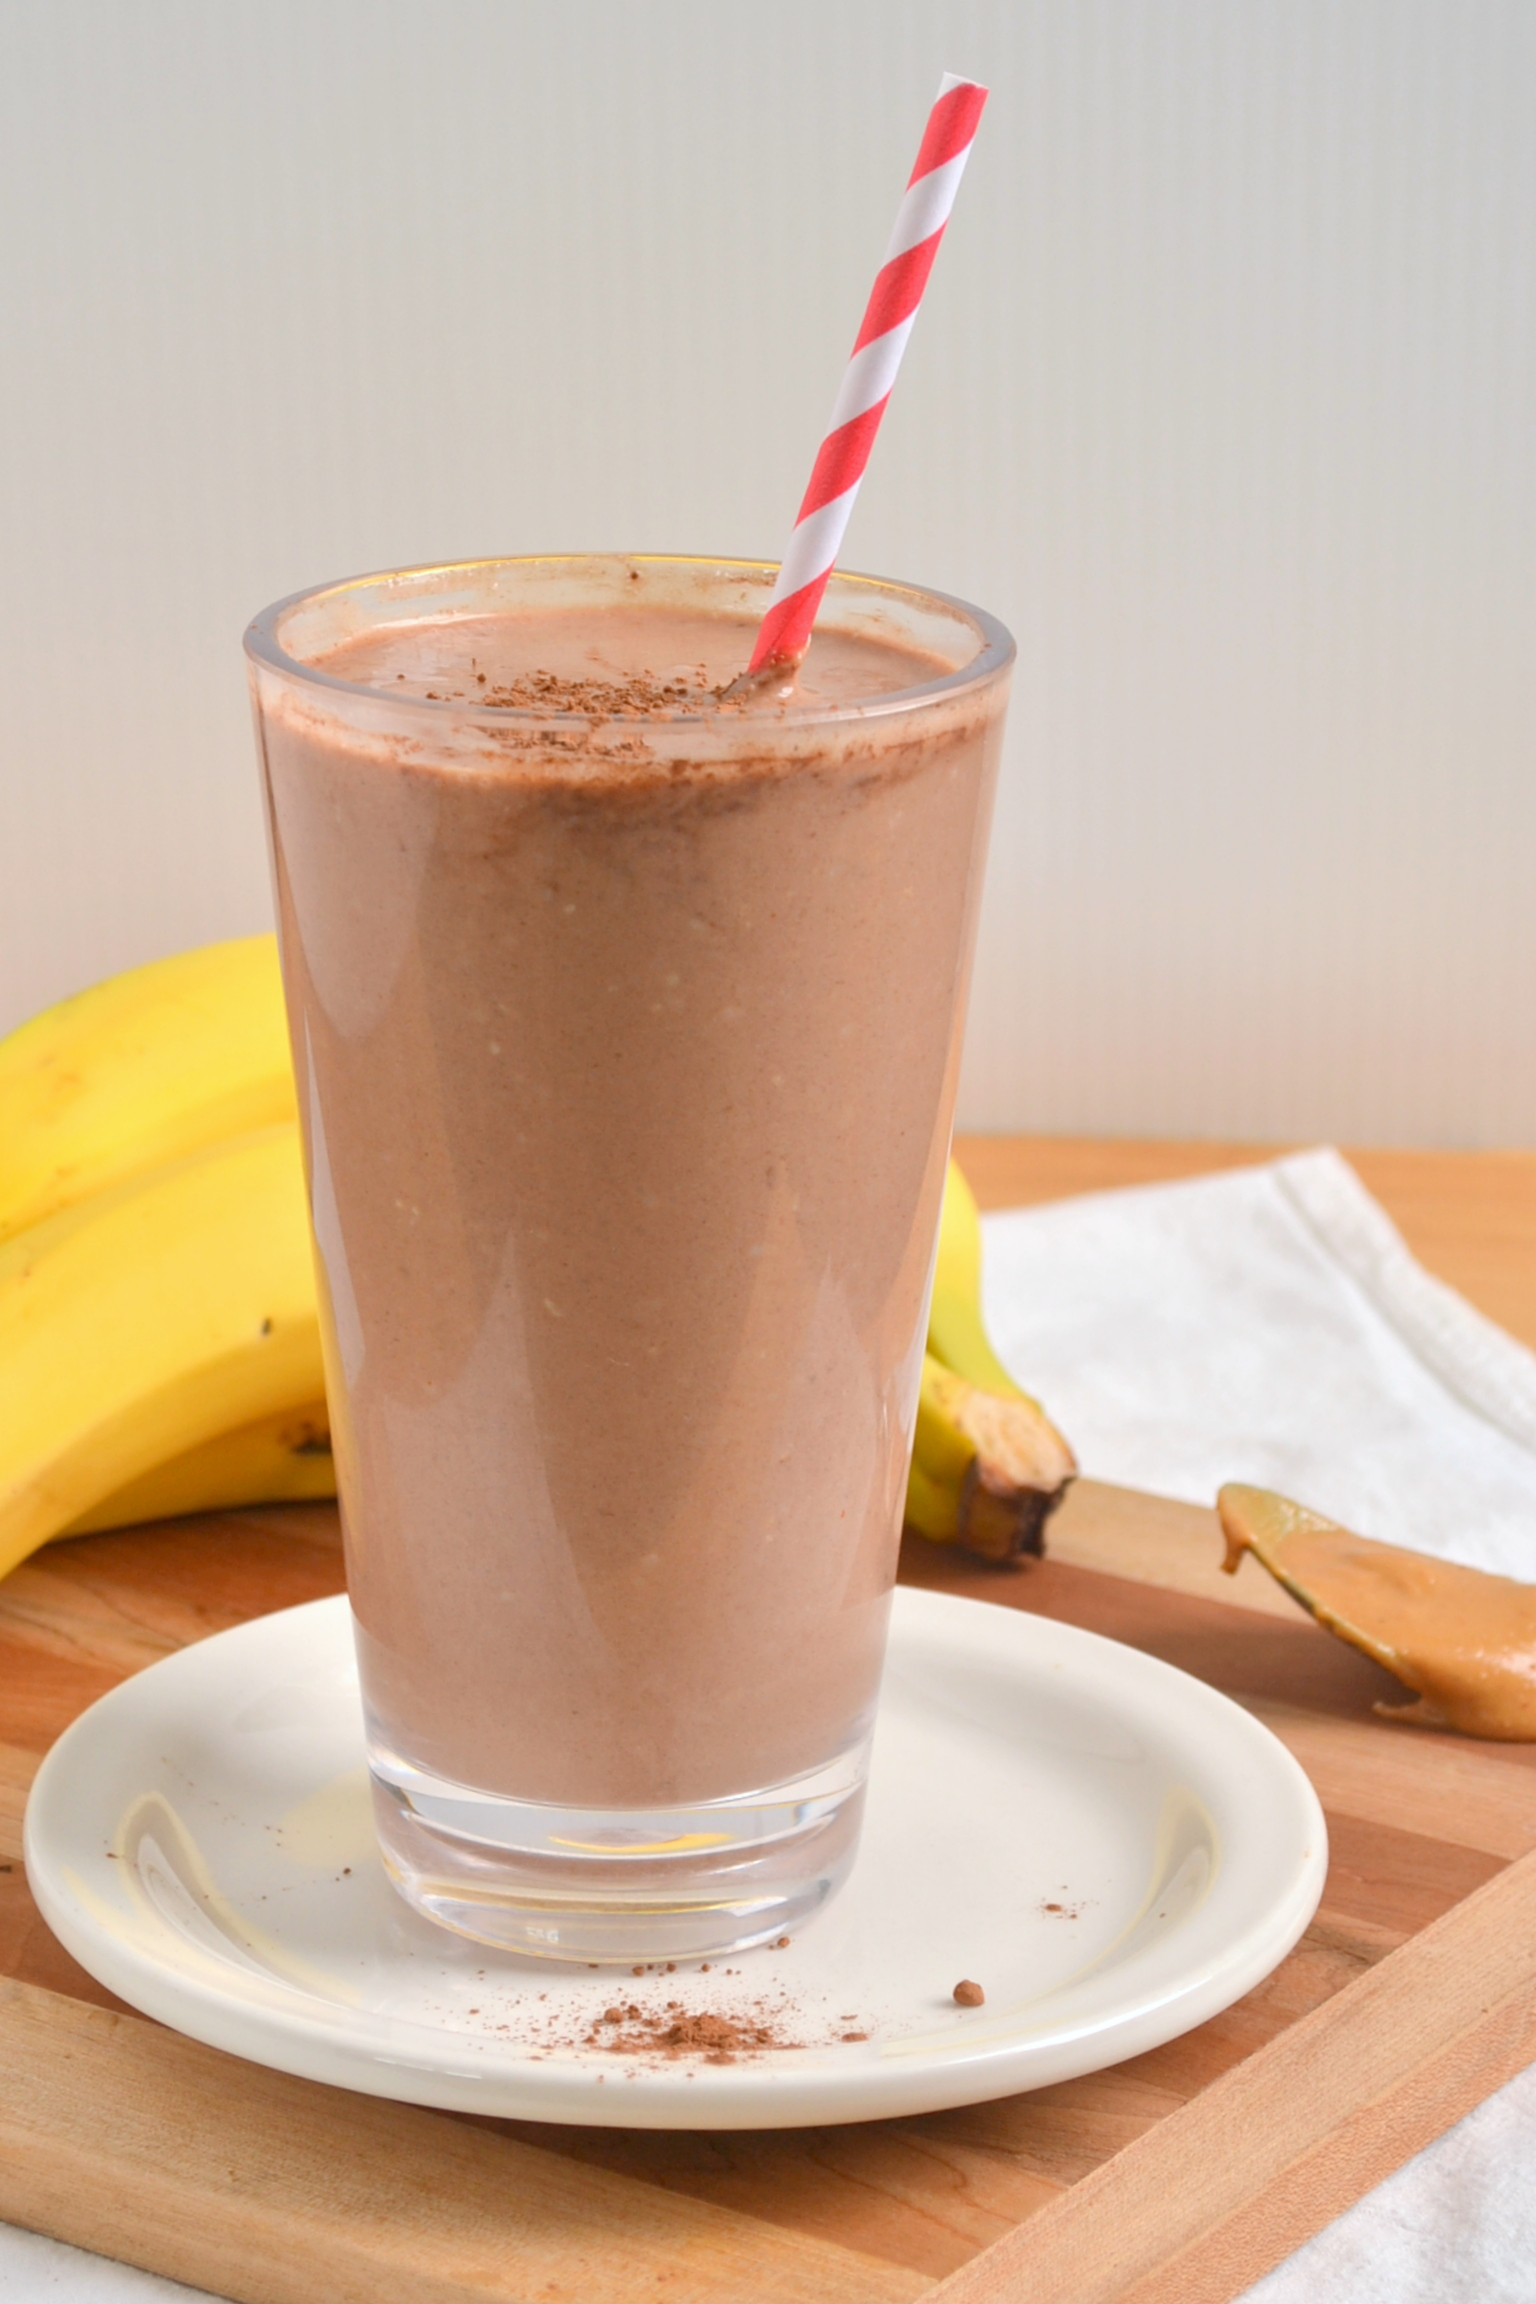 Tropical Smoothie Chocolate Peanut Butter